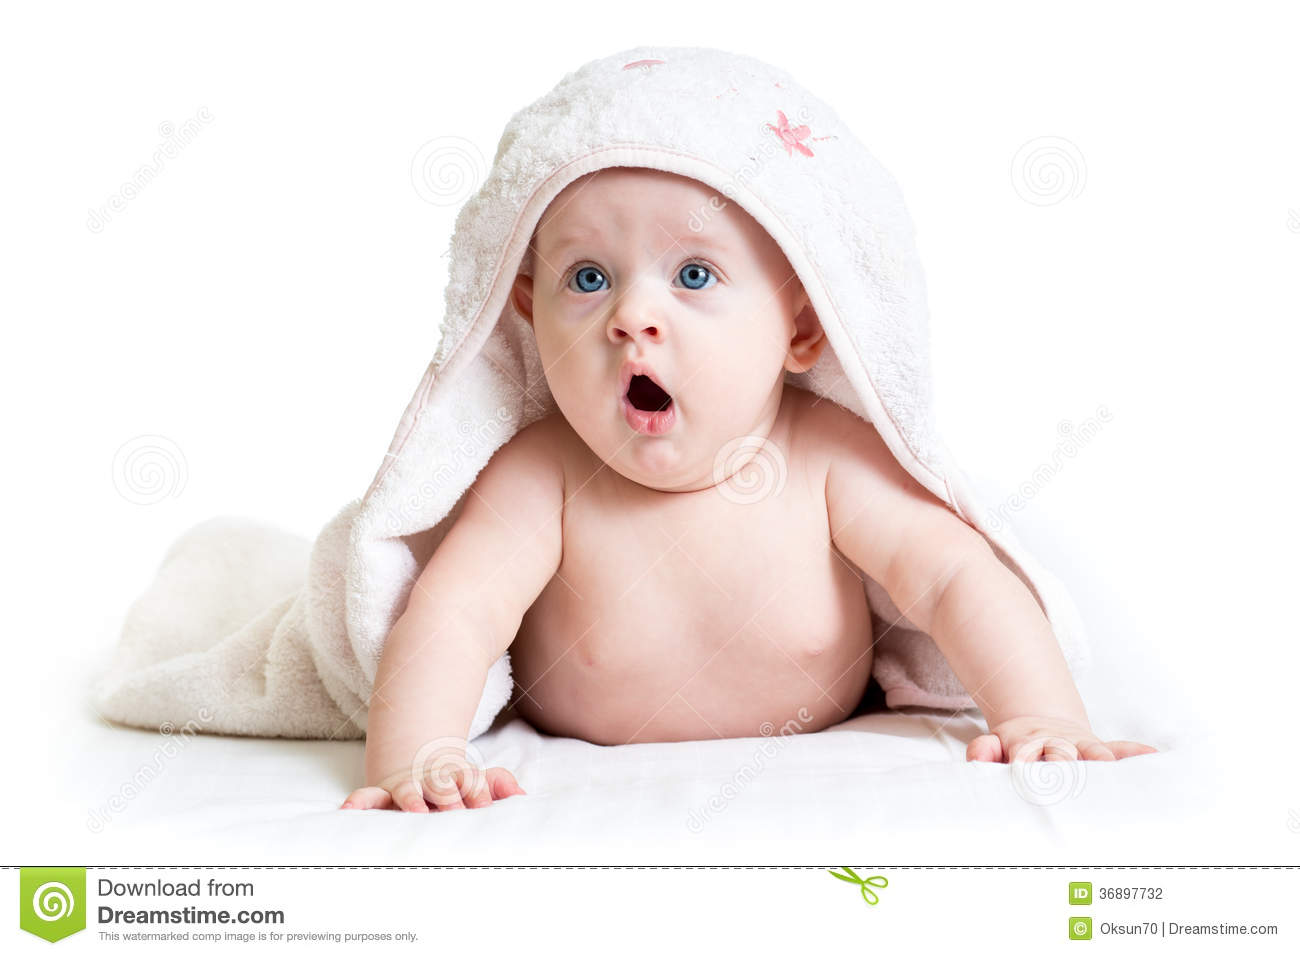 Funny Baby Girl In Towel Stock Photography - Image: 36897732 Funny Baby Girl